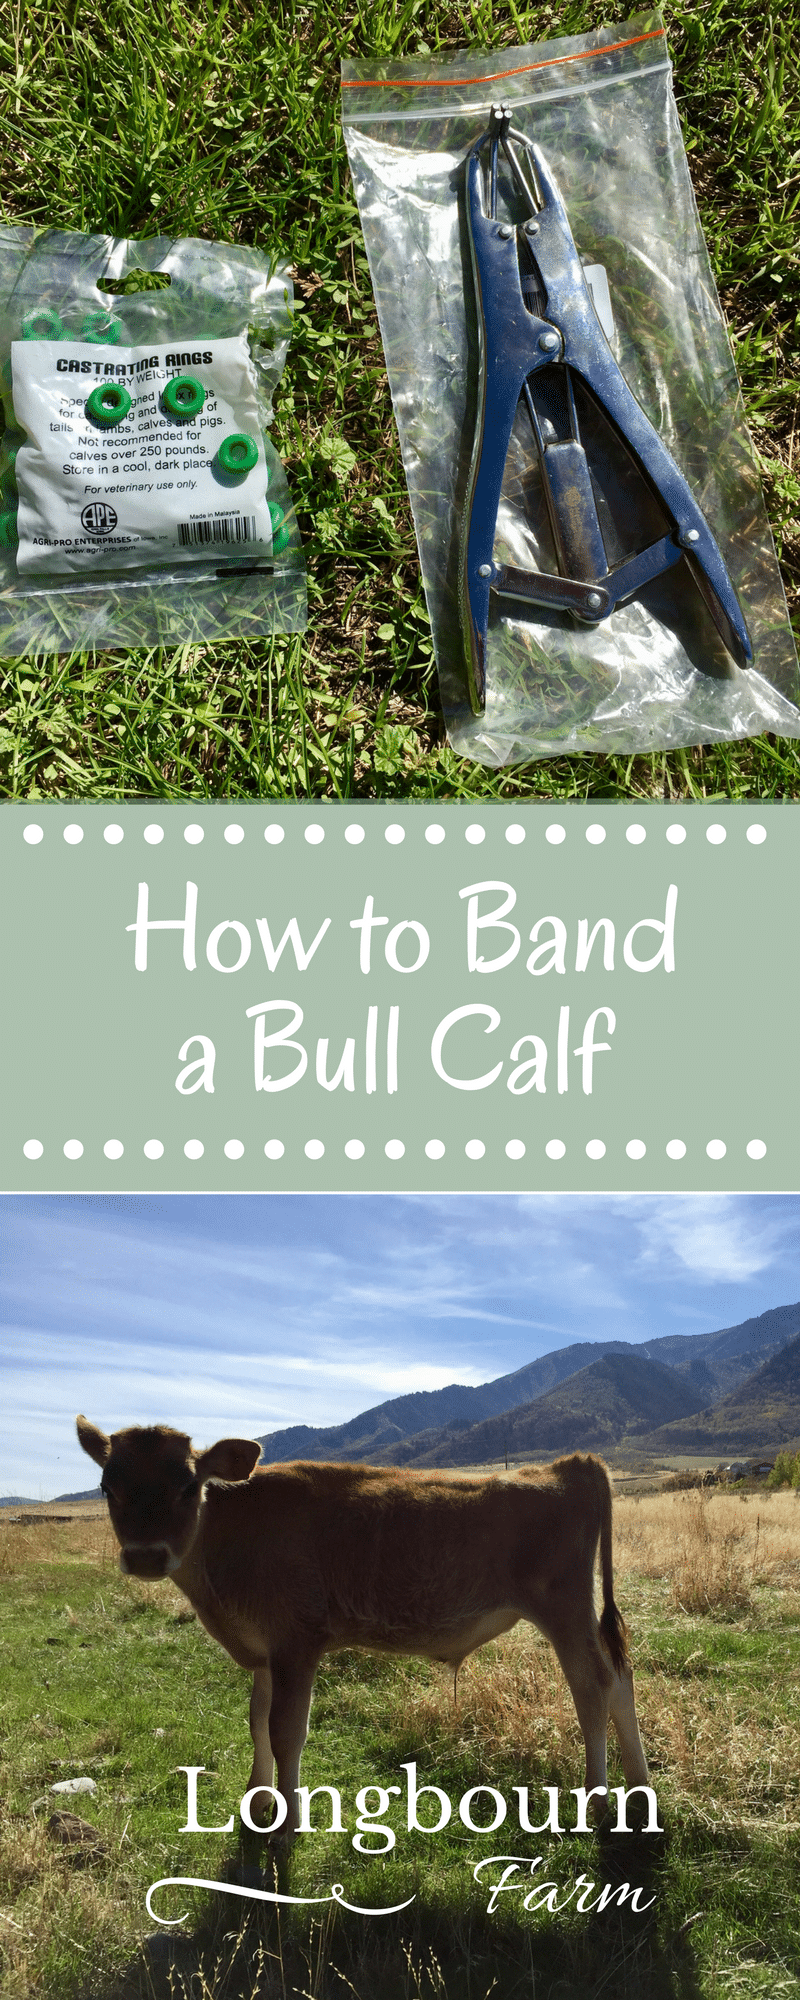 Check out this post for all the information you need on how to band a bull calf. It's really easy, humane, and quick to get done! Get the details. via @longbournfarm